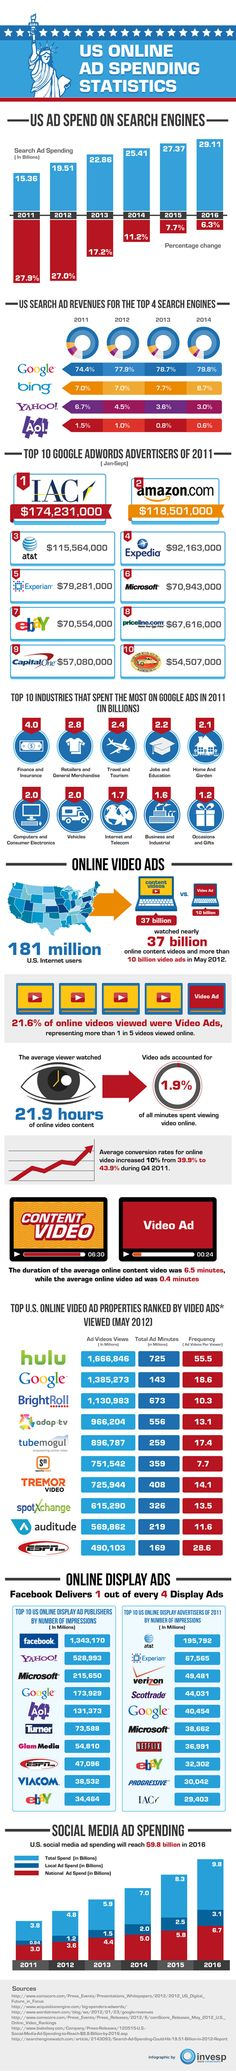 Online Advertising Statistics 2012 [Infographic] These numbers look interesting... please note I don't think online advertisement will be successful as a stand alone for any campaign. Unless of course you (your client) has tons of $ to throw at it, or you are using it in conjunction with either social, video, real time, etc.